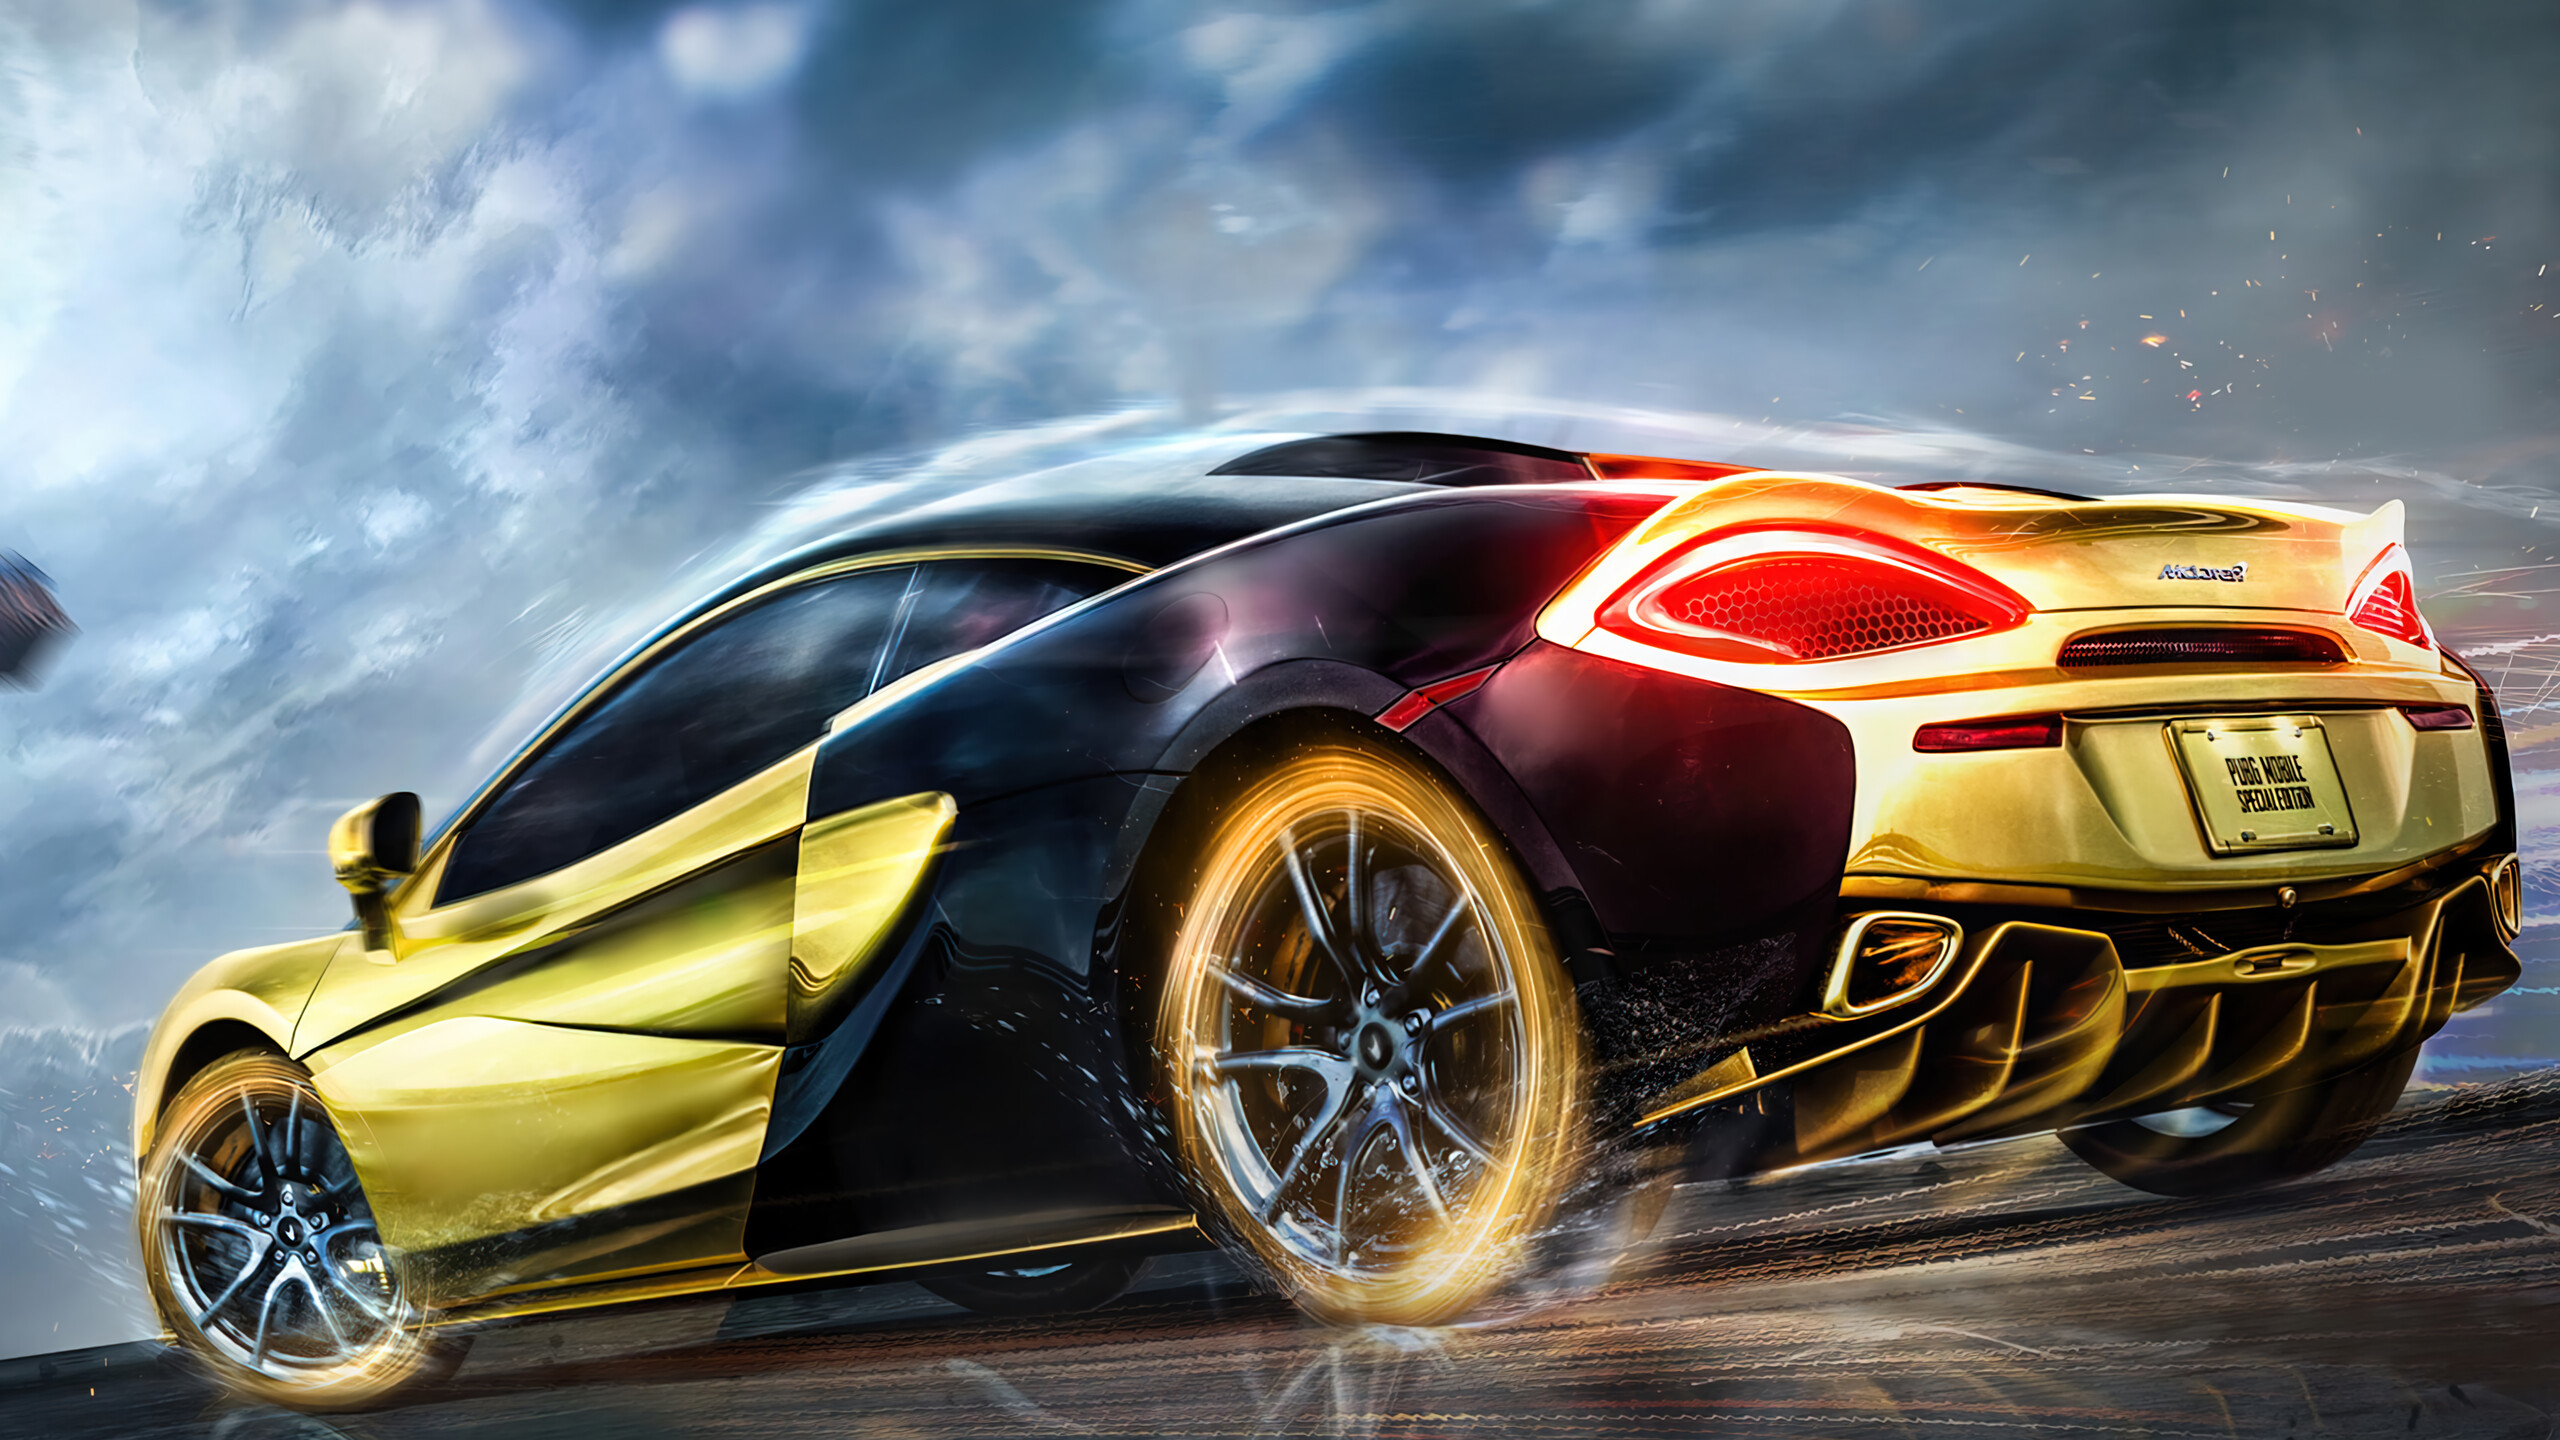 These simple tricks will help make your next wallpapering job go smoothly. Pubg Mobile Gold Mclaren Sports Car Wallpaper 4k Pc Desktop 7670a